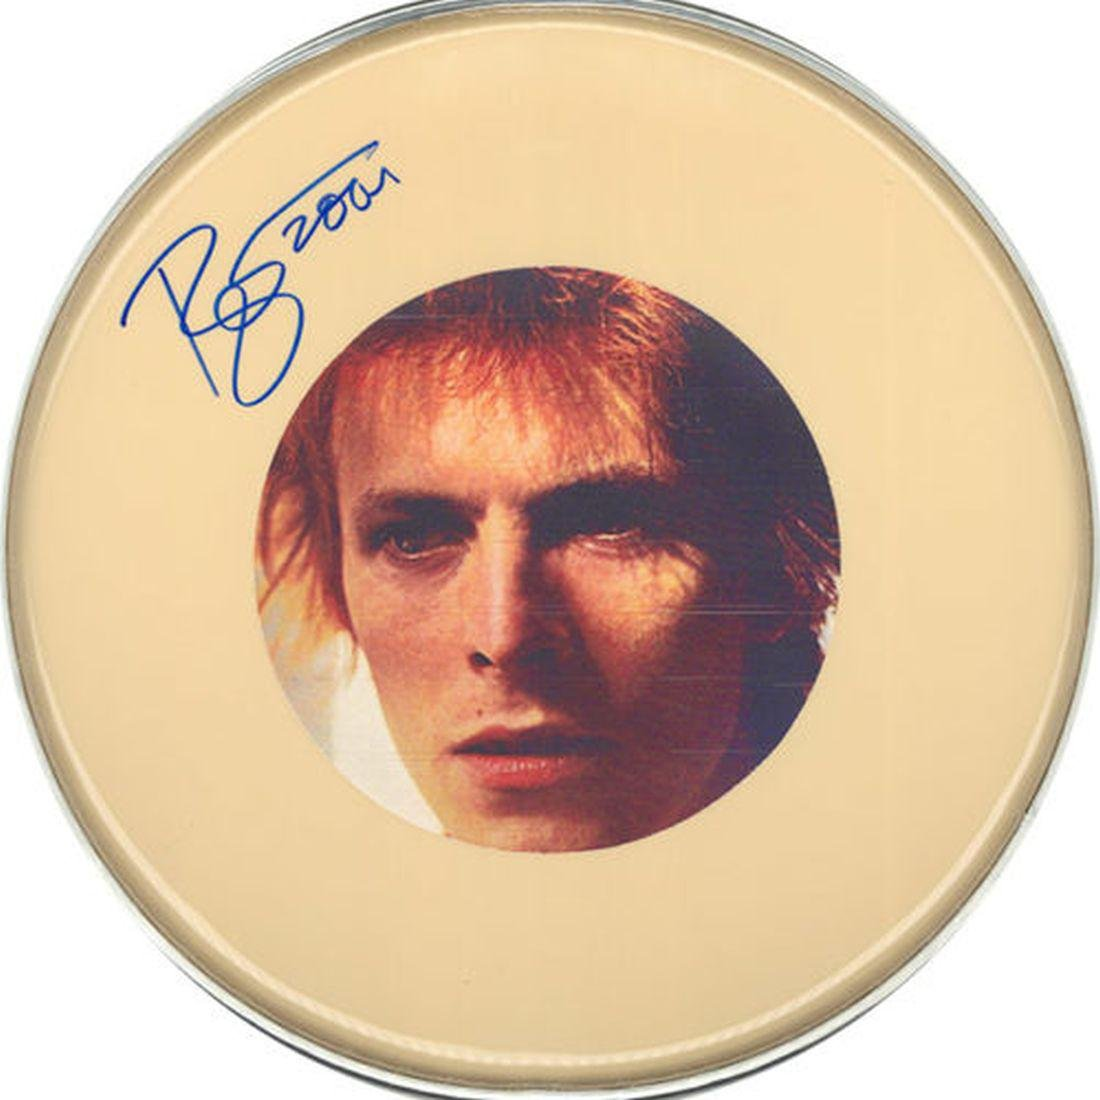 "David Bowie ""David Bowie"" Drum Head"